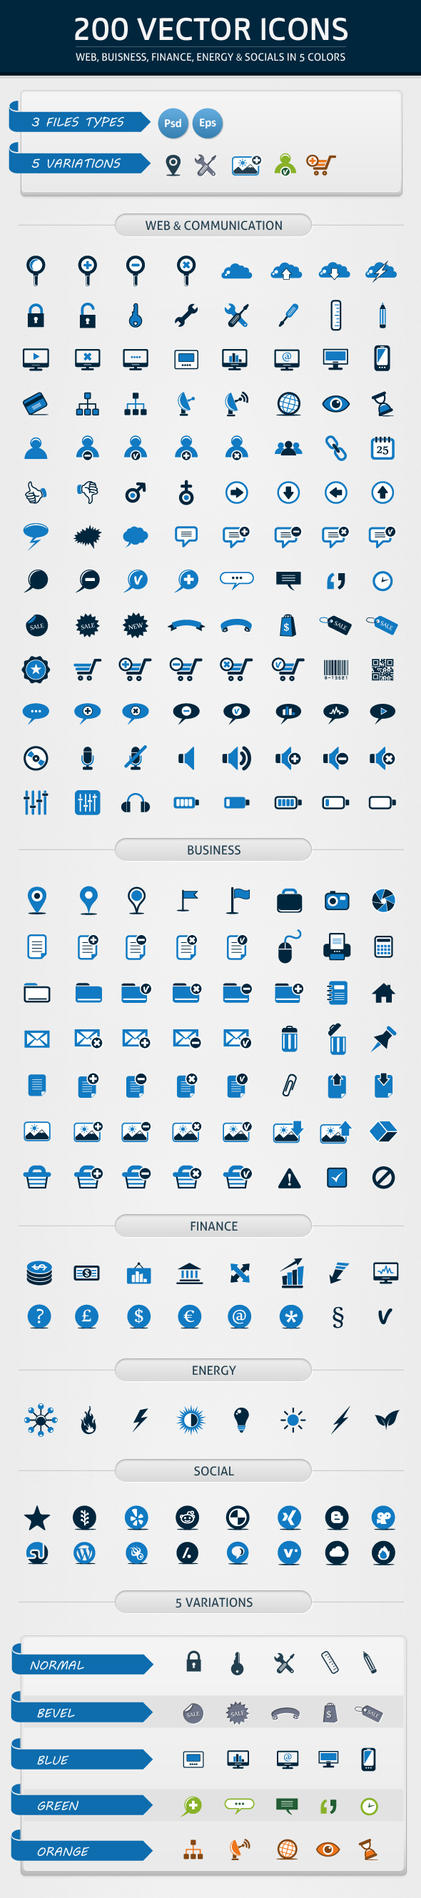 200 Web Icons in 5 Colors by renefranceschi